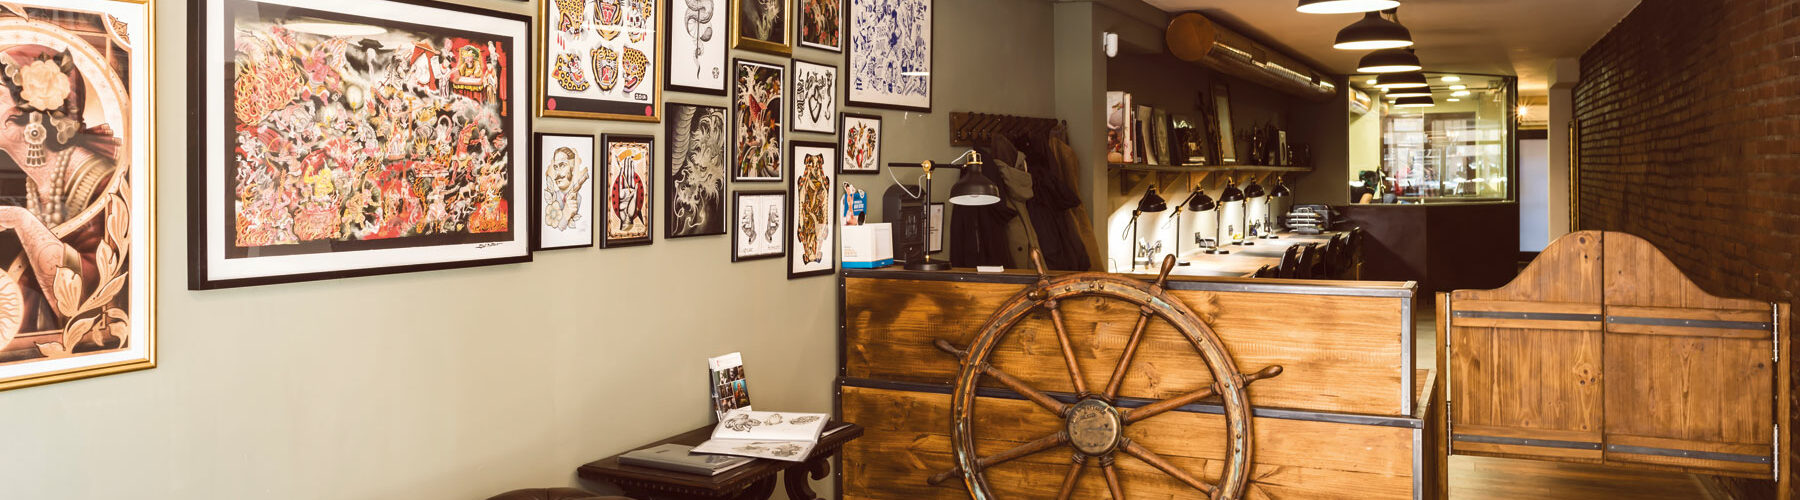 Black Ship Tattoo BCN - Estudio de tatuajes en Barcelona